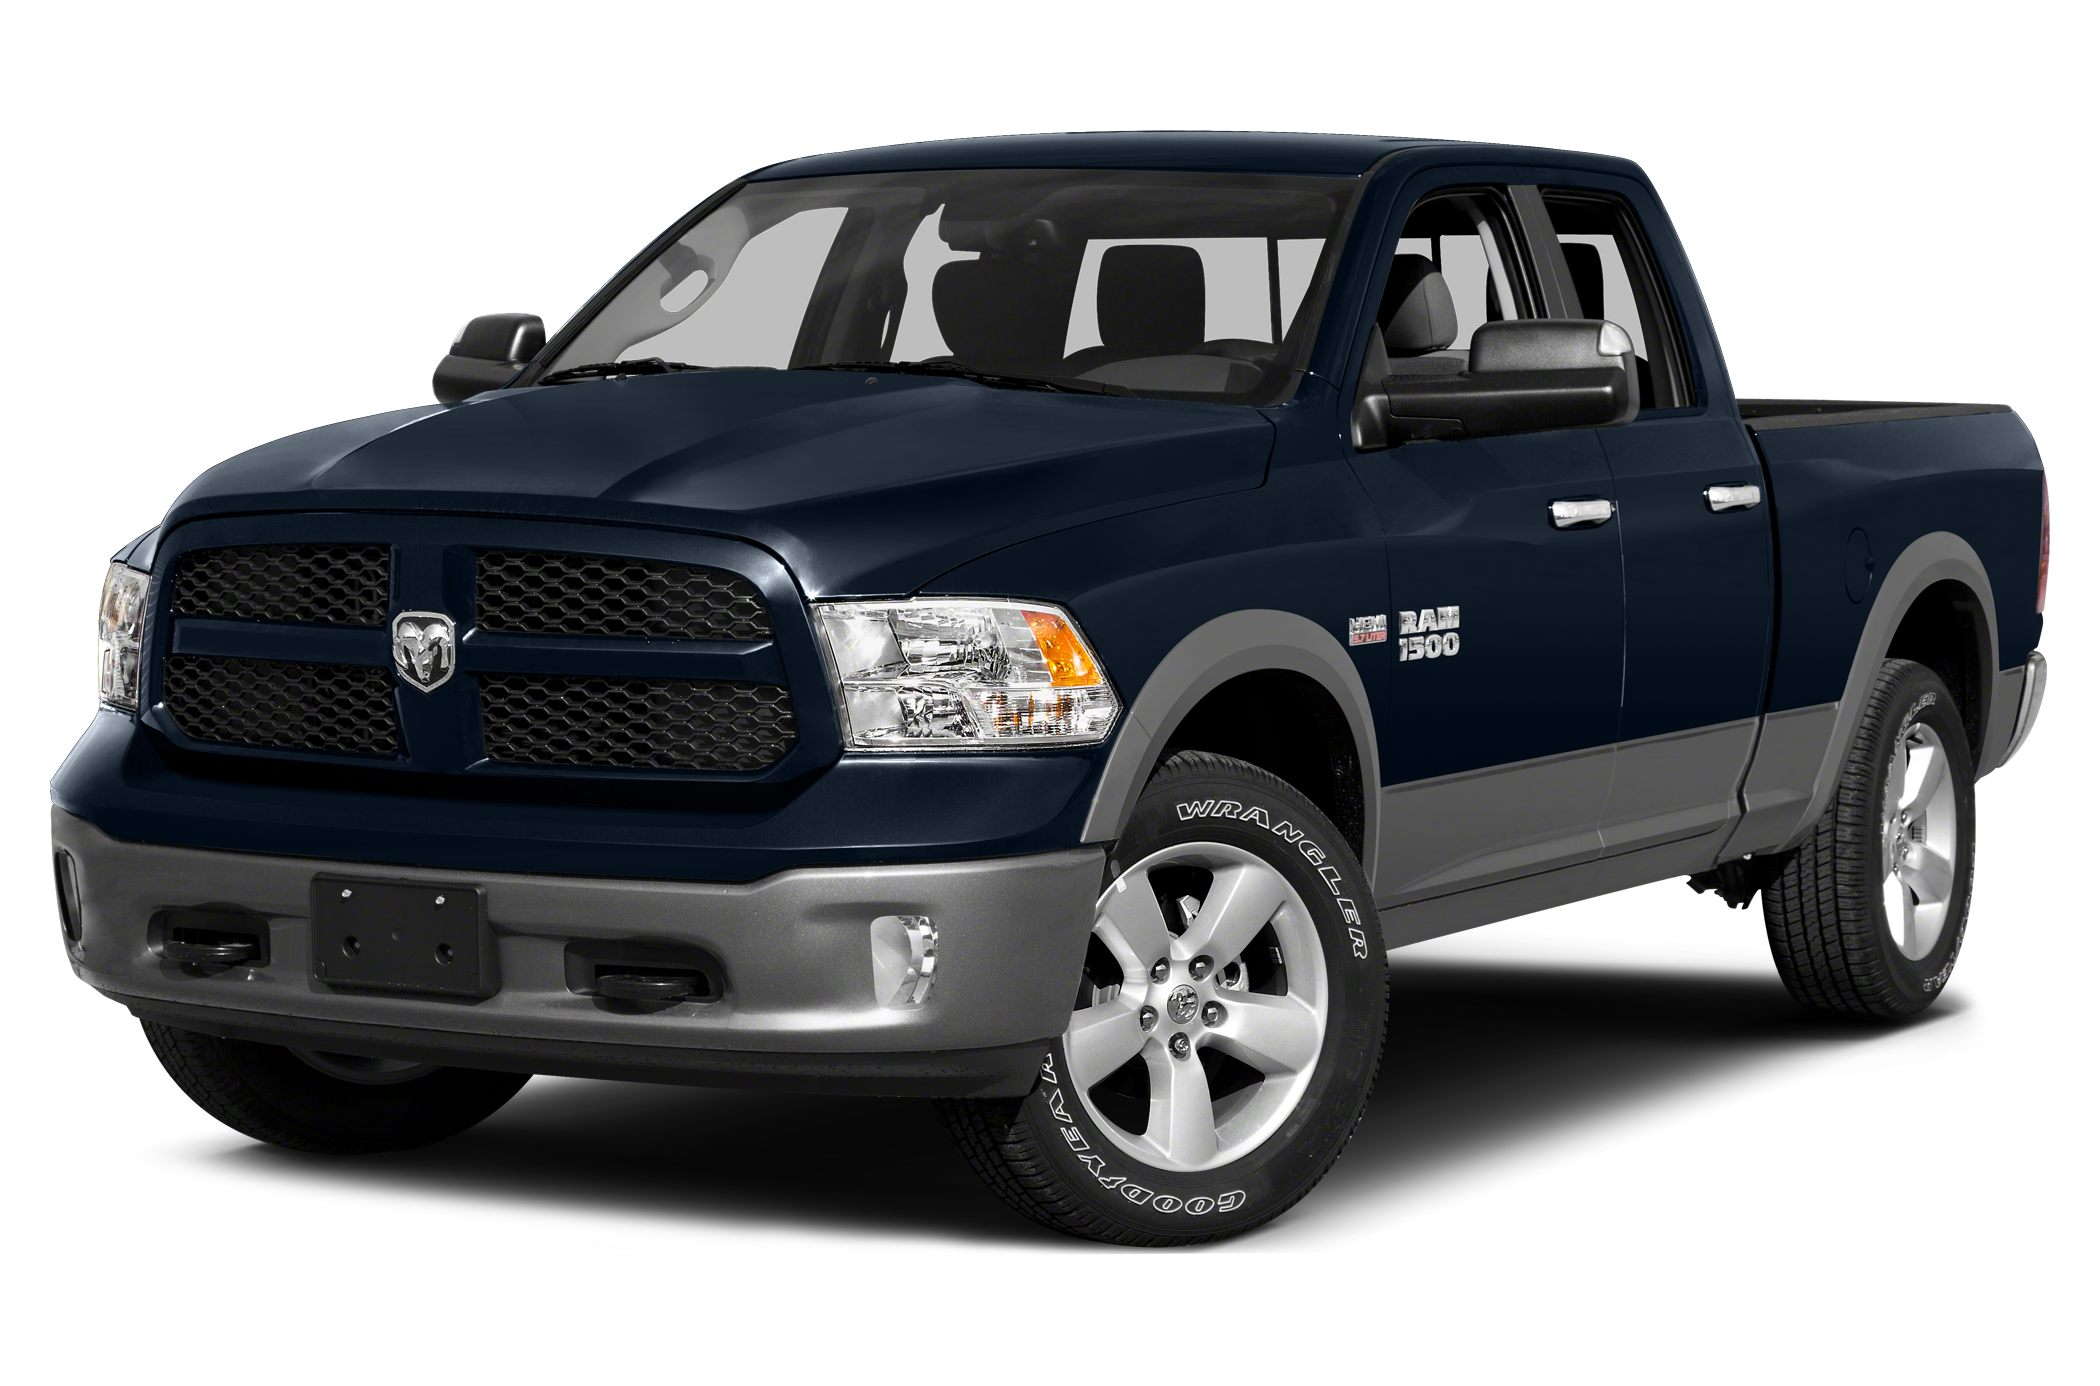 2014 RAM 1500 Laramie Crew Cab Pickup for sale in Little Rock for $38,988 with 29,235 miles